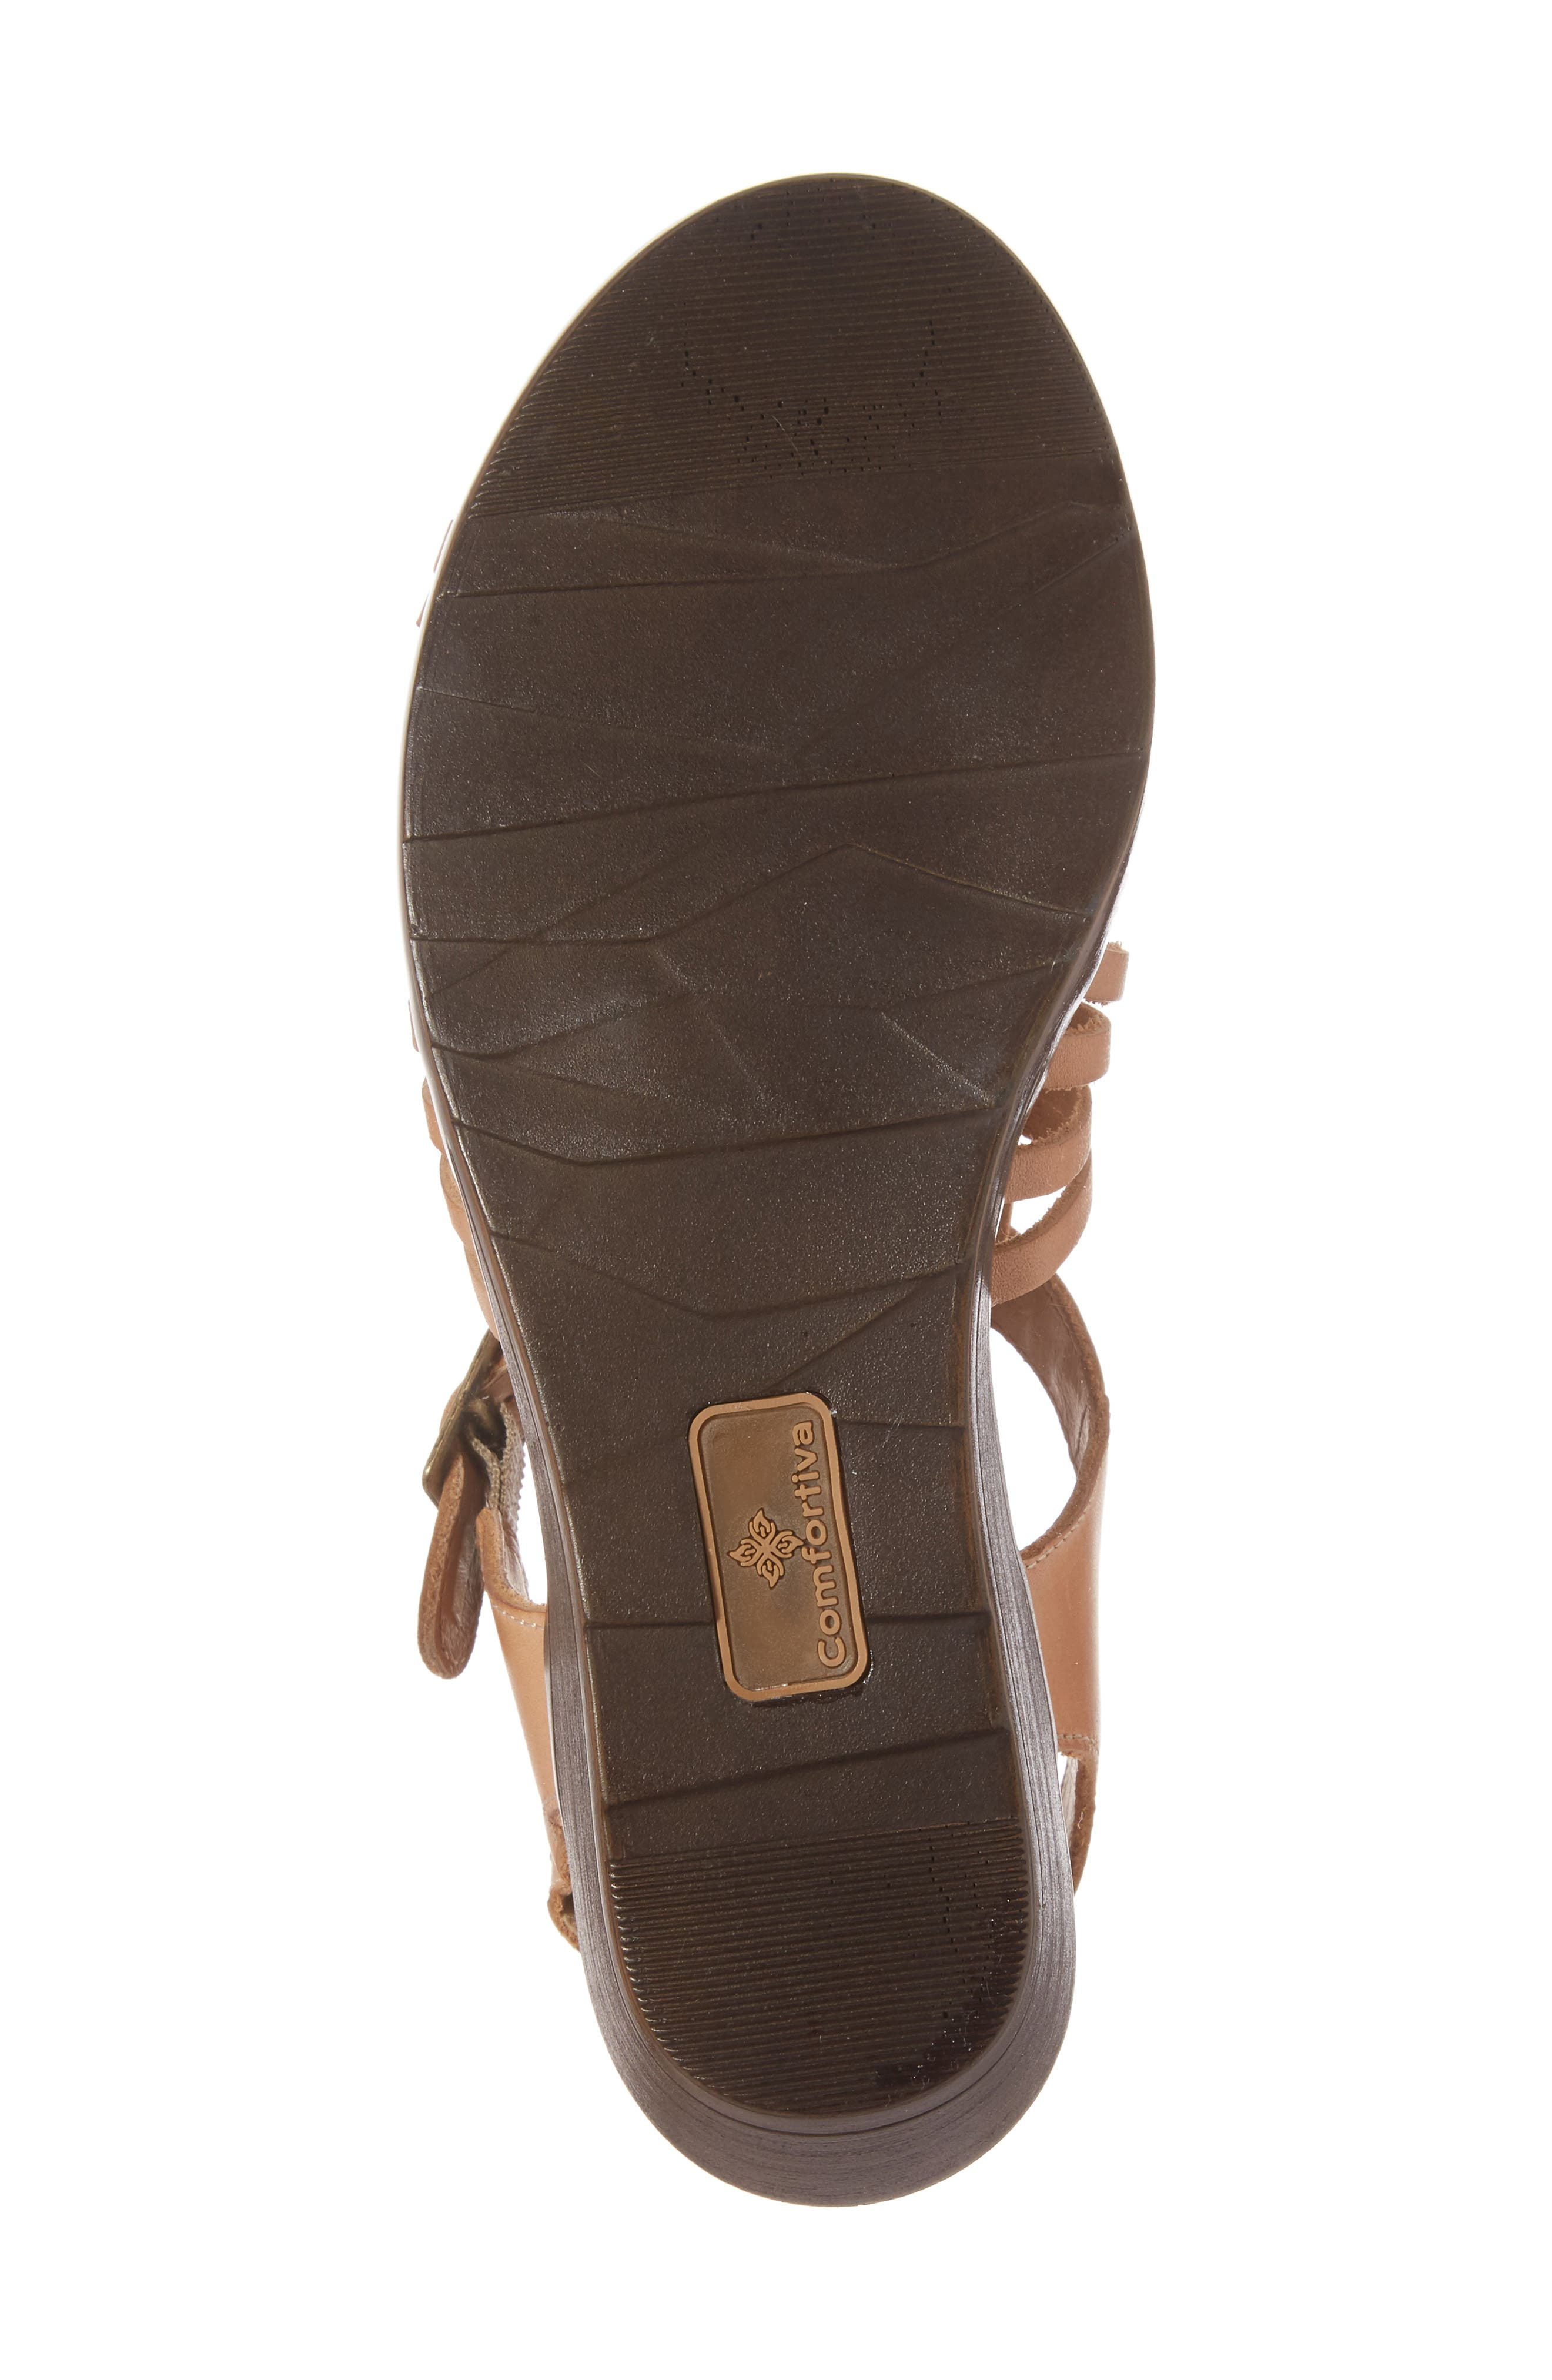 Freeport Sandal,                             Alternate thumbnail 6, color,                             NATURAL LEATHER